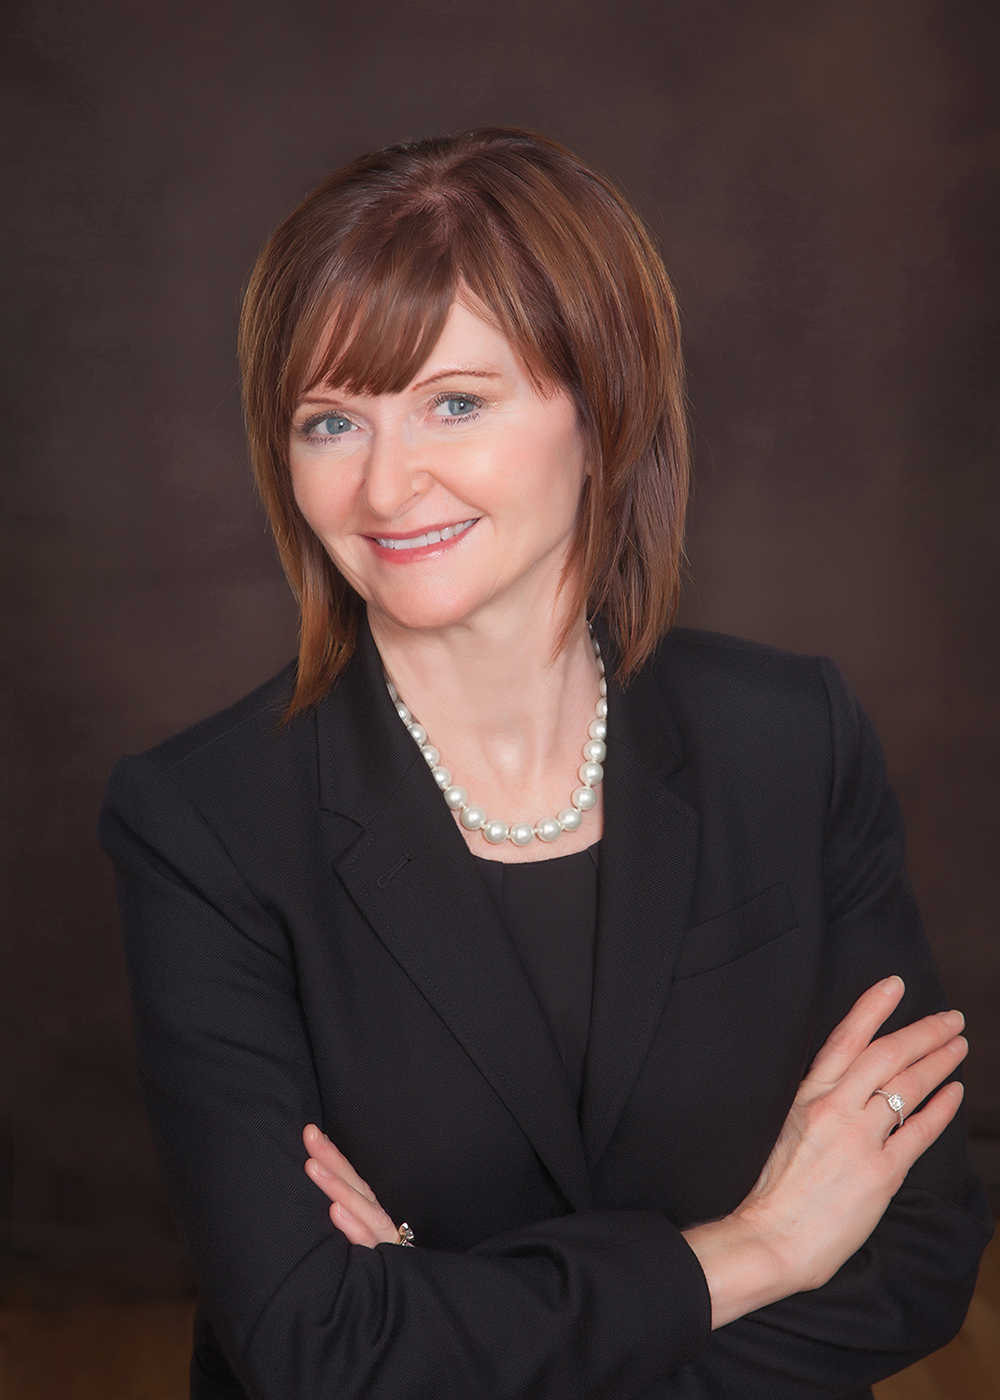 Sally Frizzell Coleman, CPA